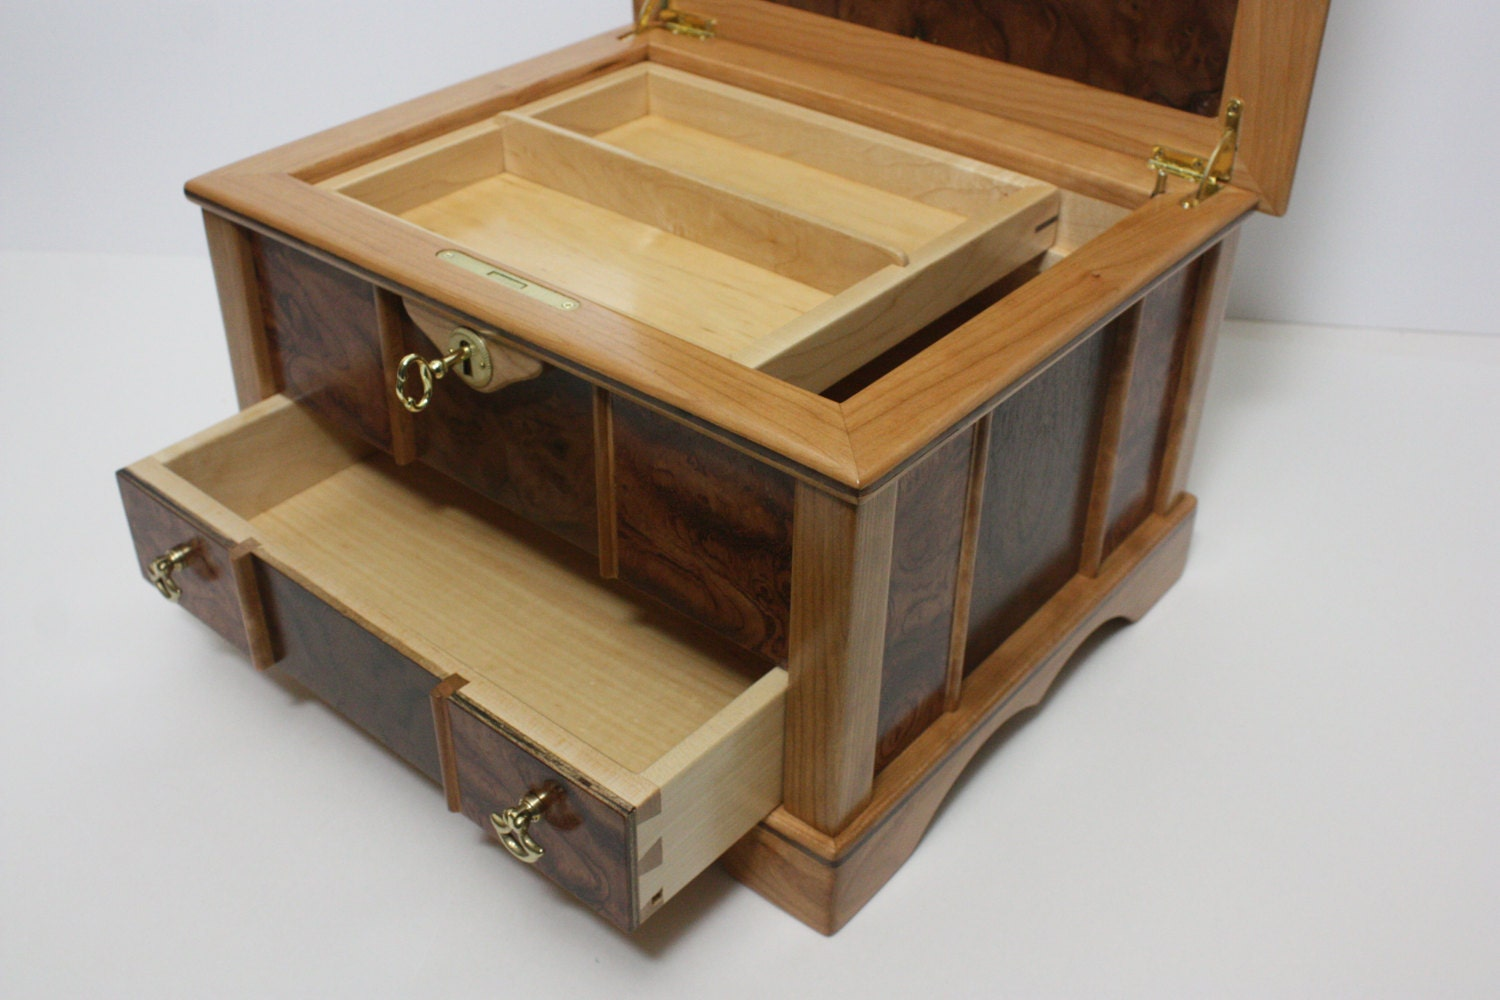 Large Locking Box with Lift Out Tray and Drawer